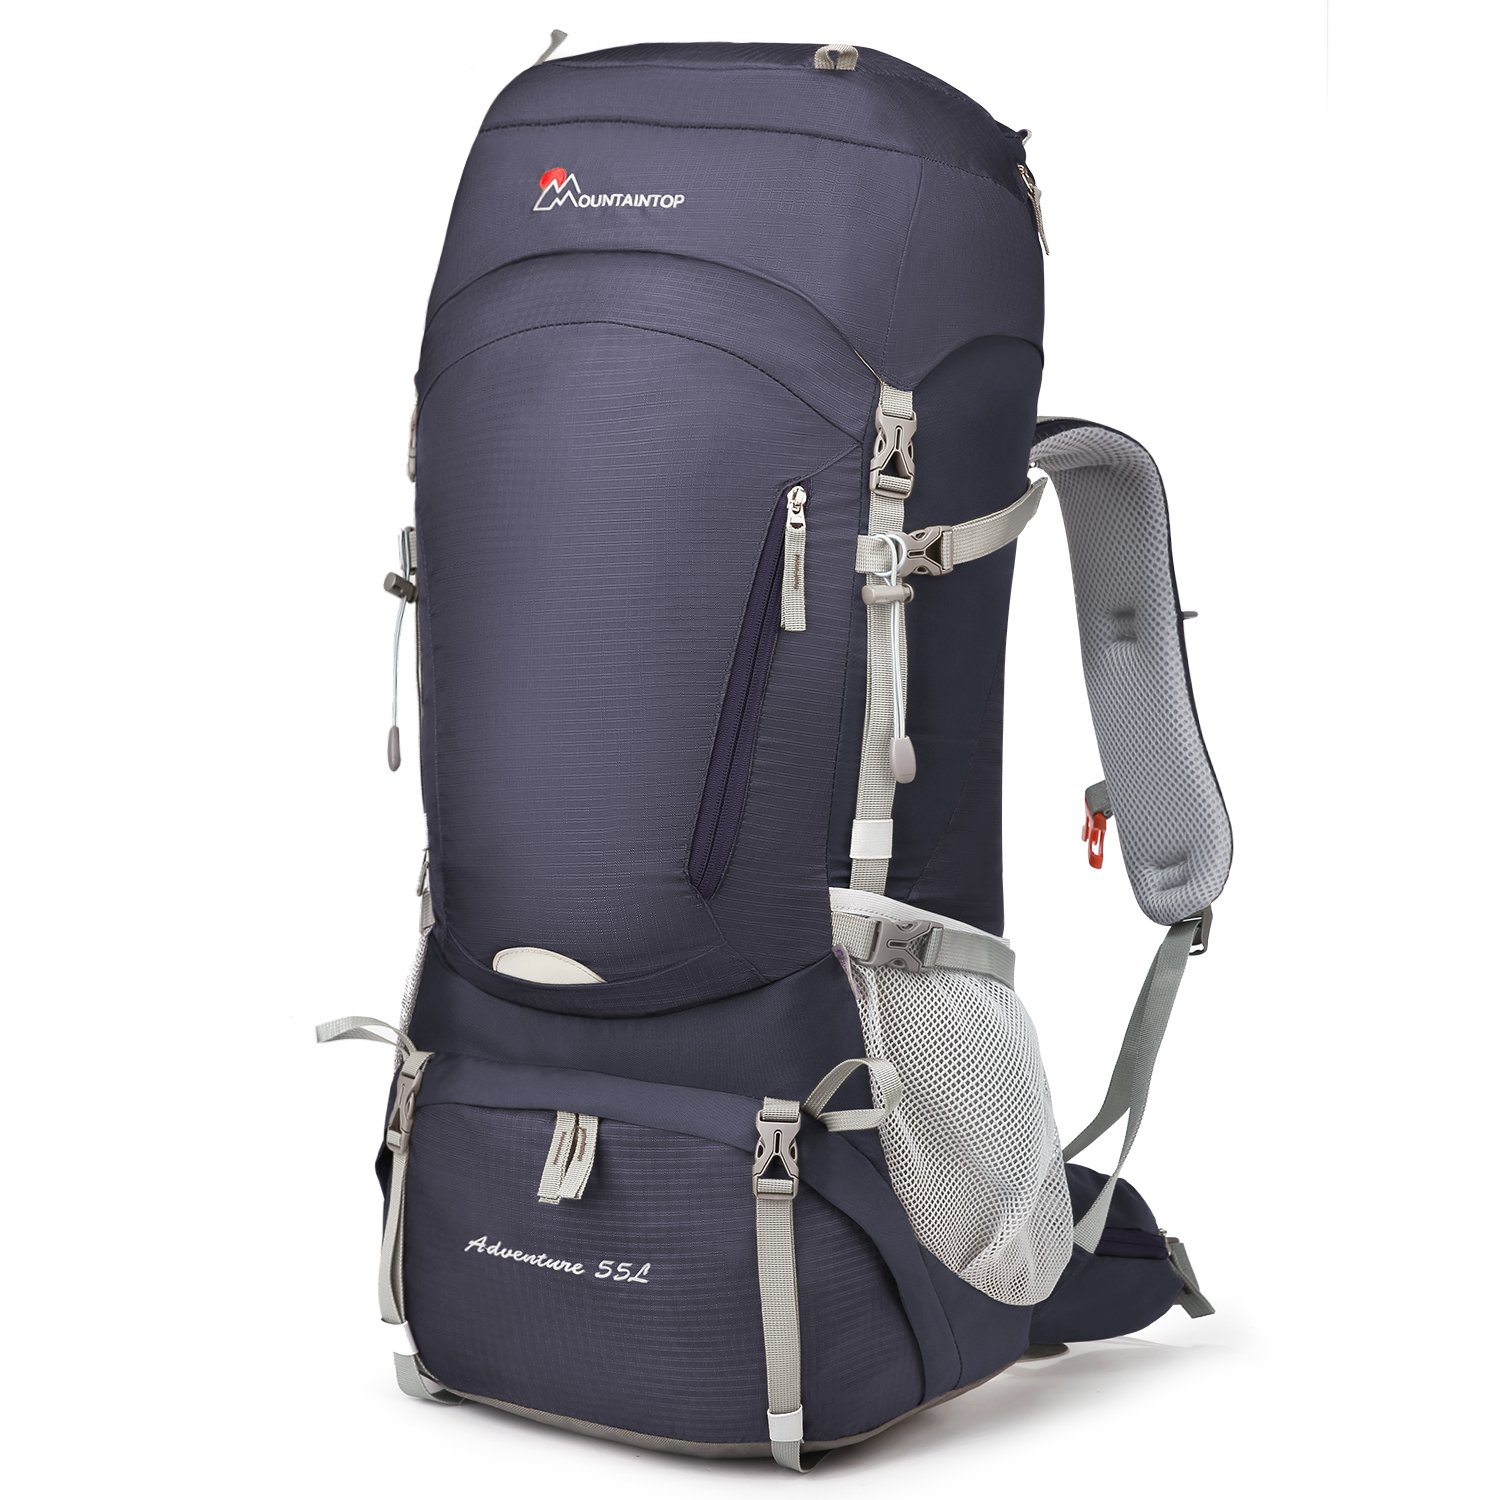 Mountaintop 50L/55L Hiking Backpack with Rain Cover by MOUNTAINTOP